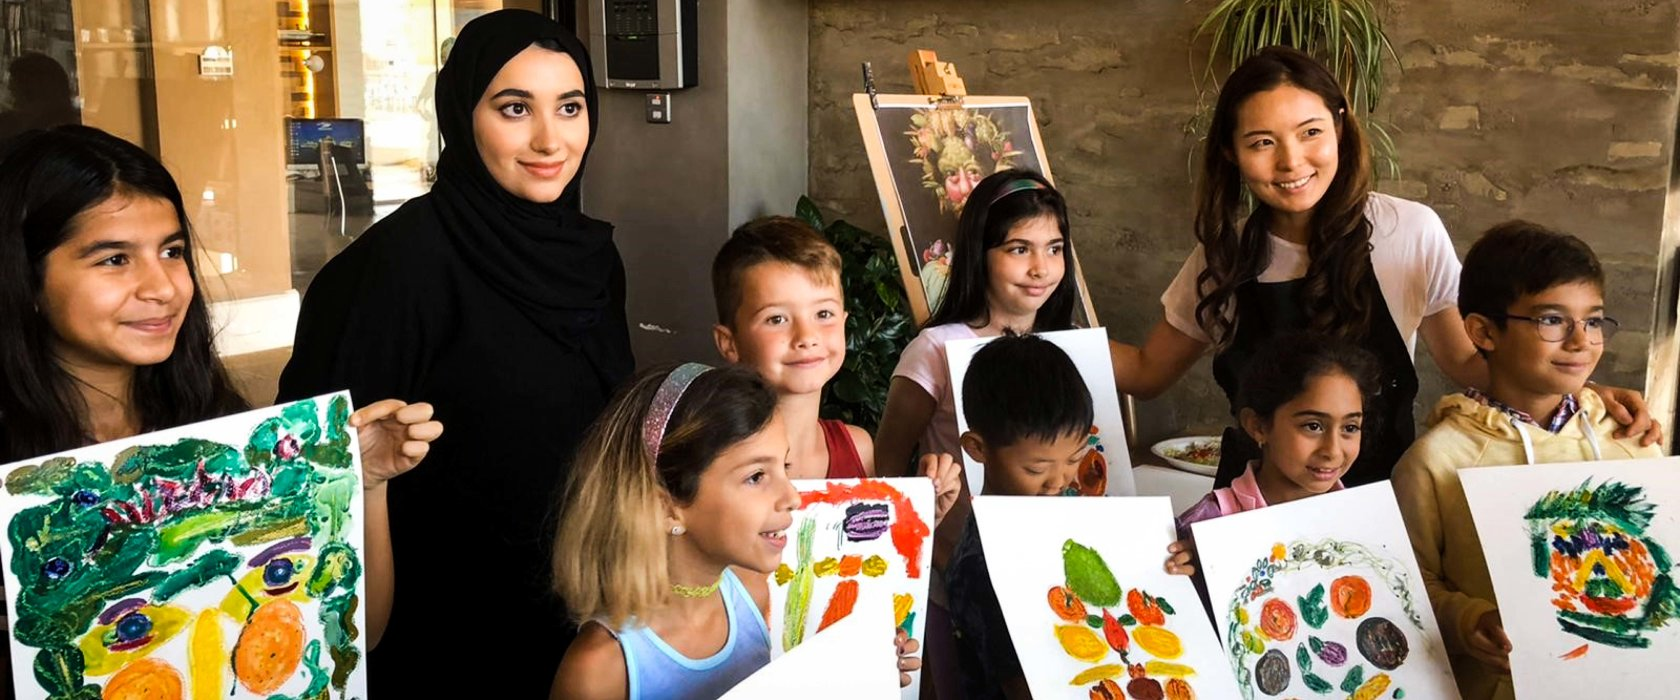 WISE creates a community learning experience for Qatar